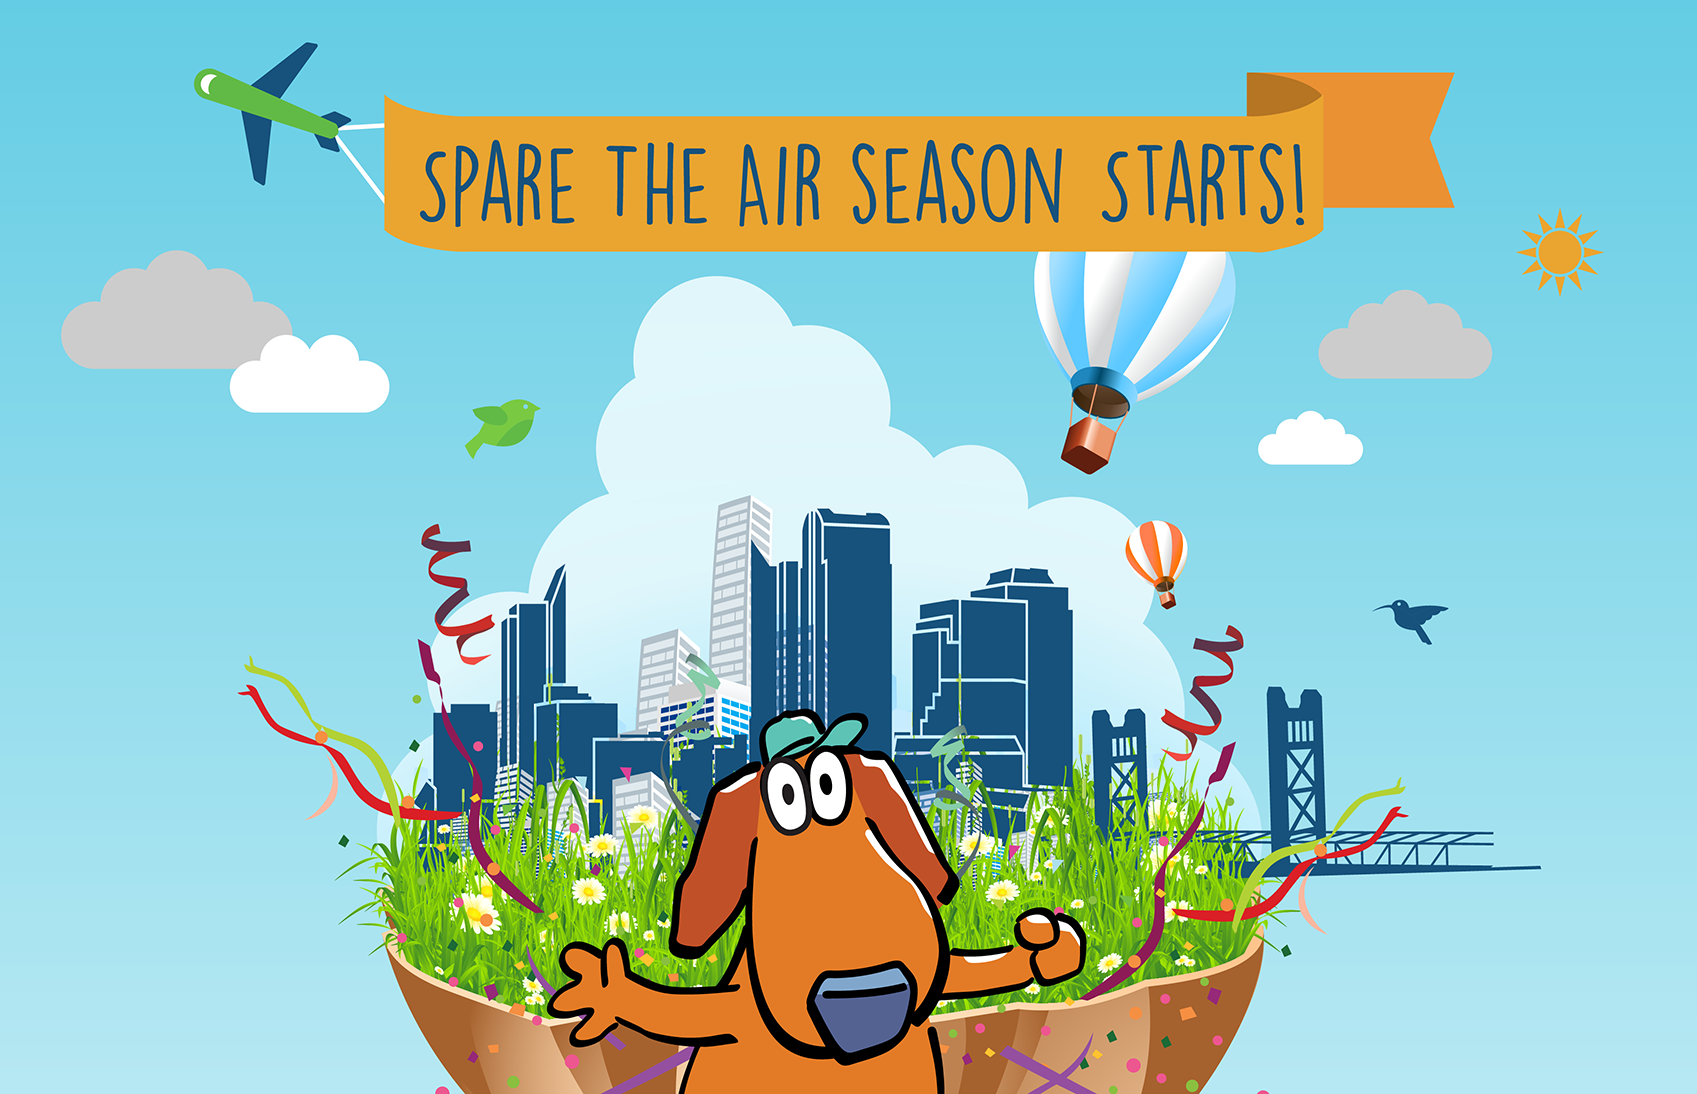 Spare The Air Season Starts